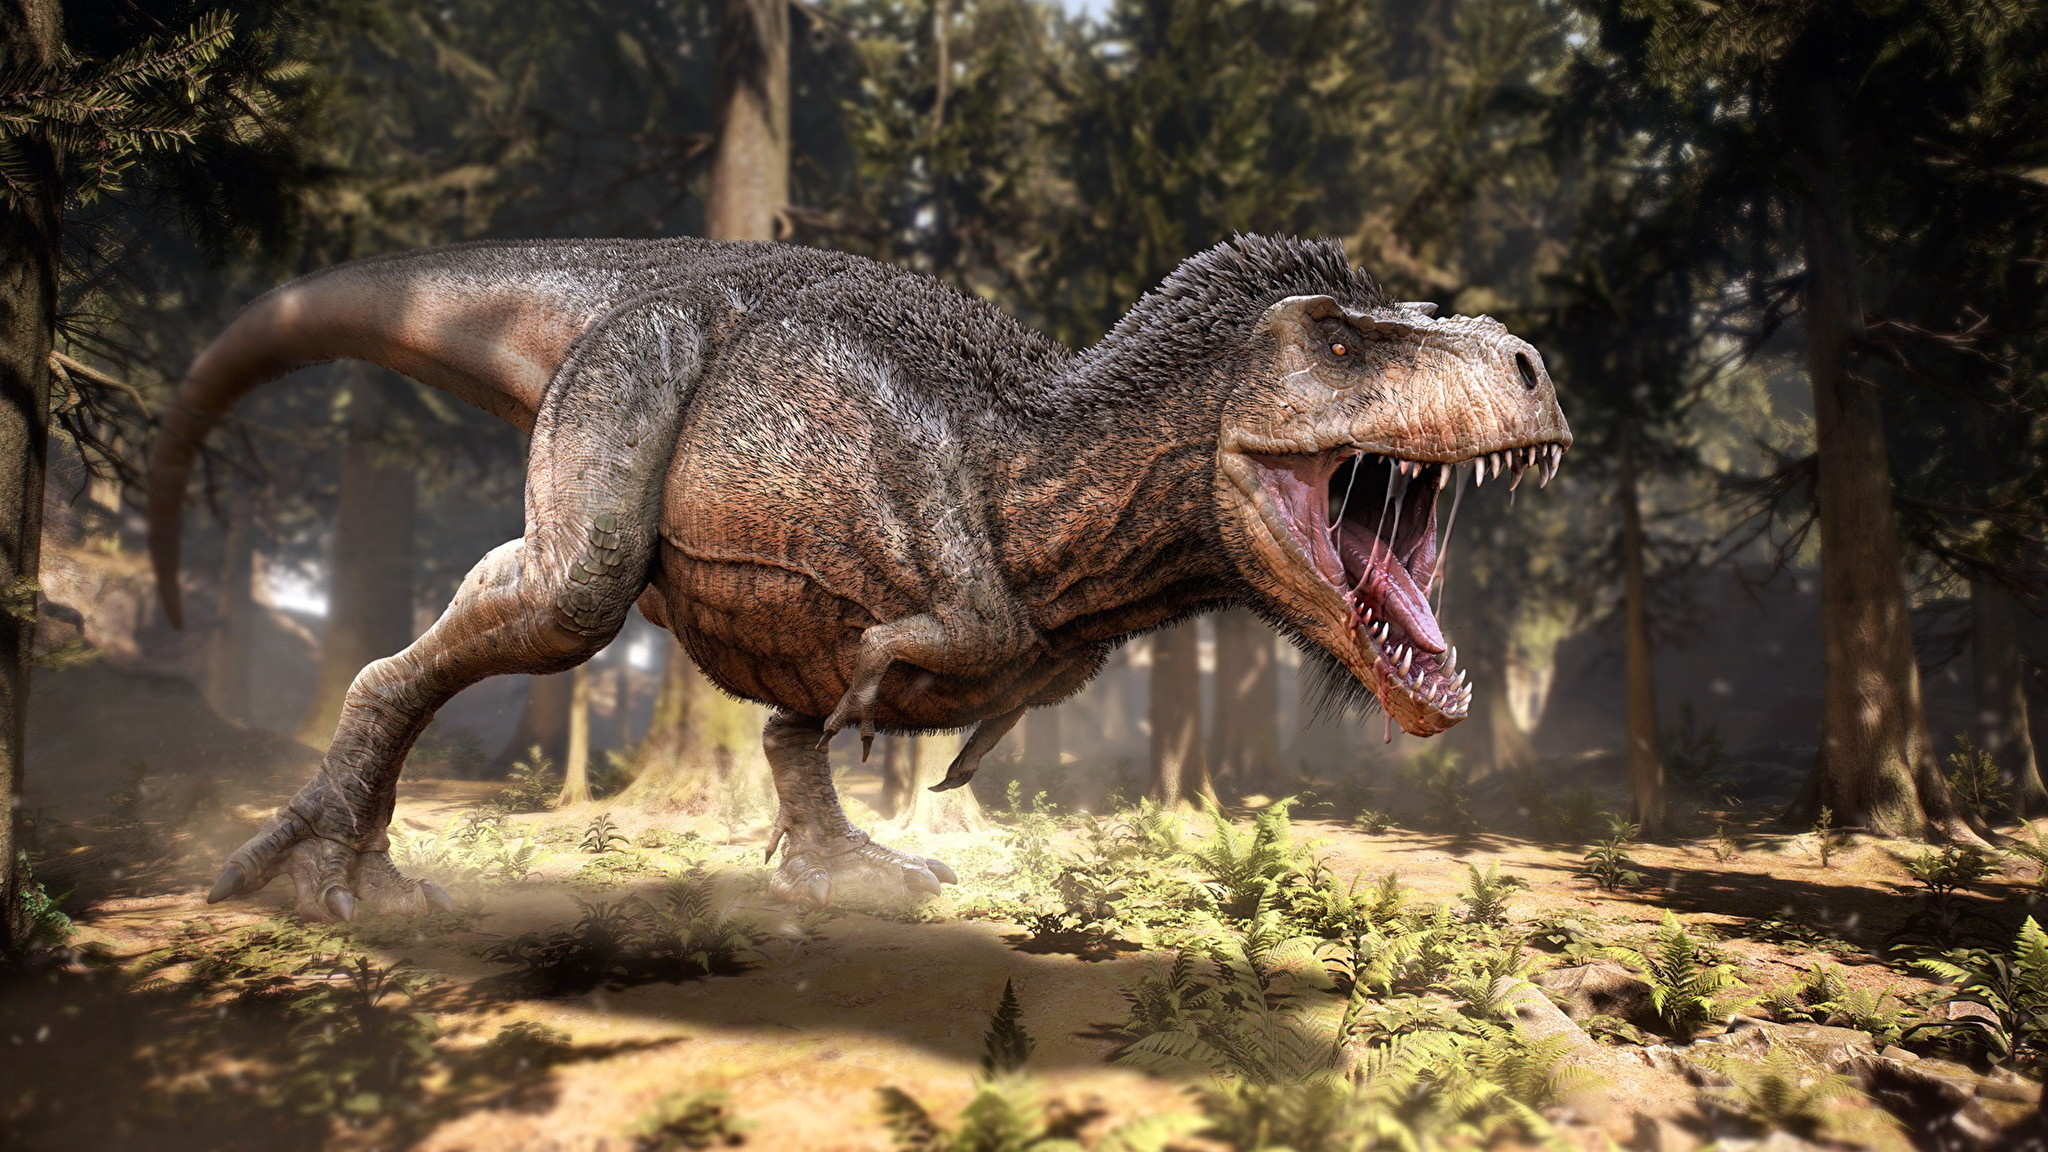 Res: 2048x1152, Wallpapers Tyrannosaurus rex Dinosaurs 3D Graphics Roar Animals Ancient  animals  angry